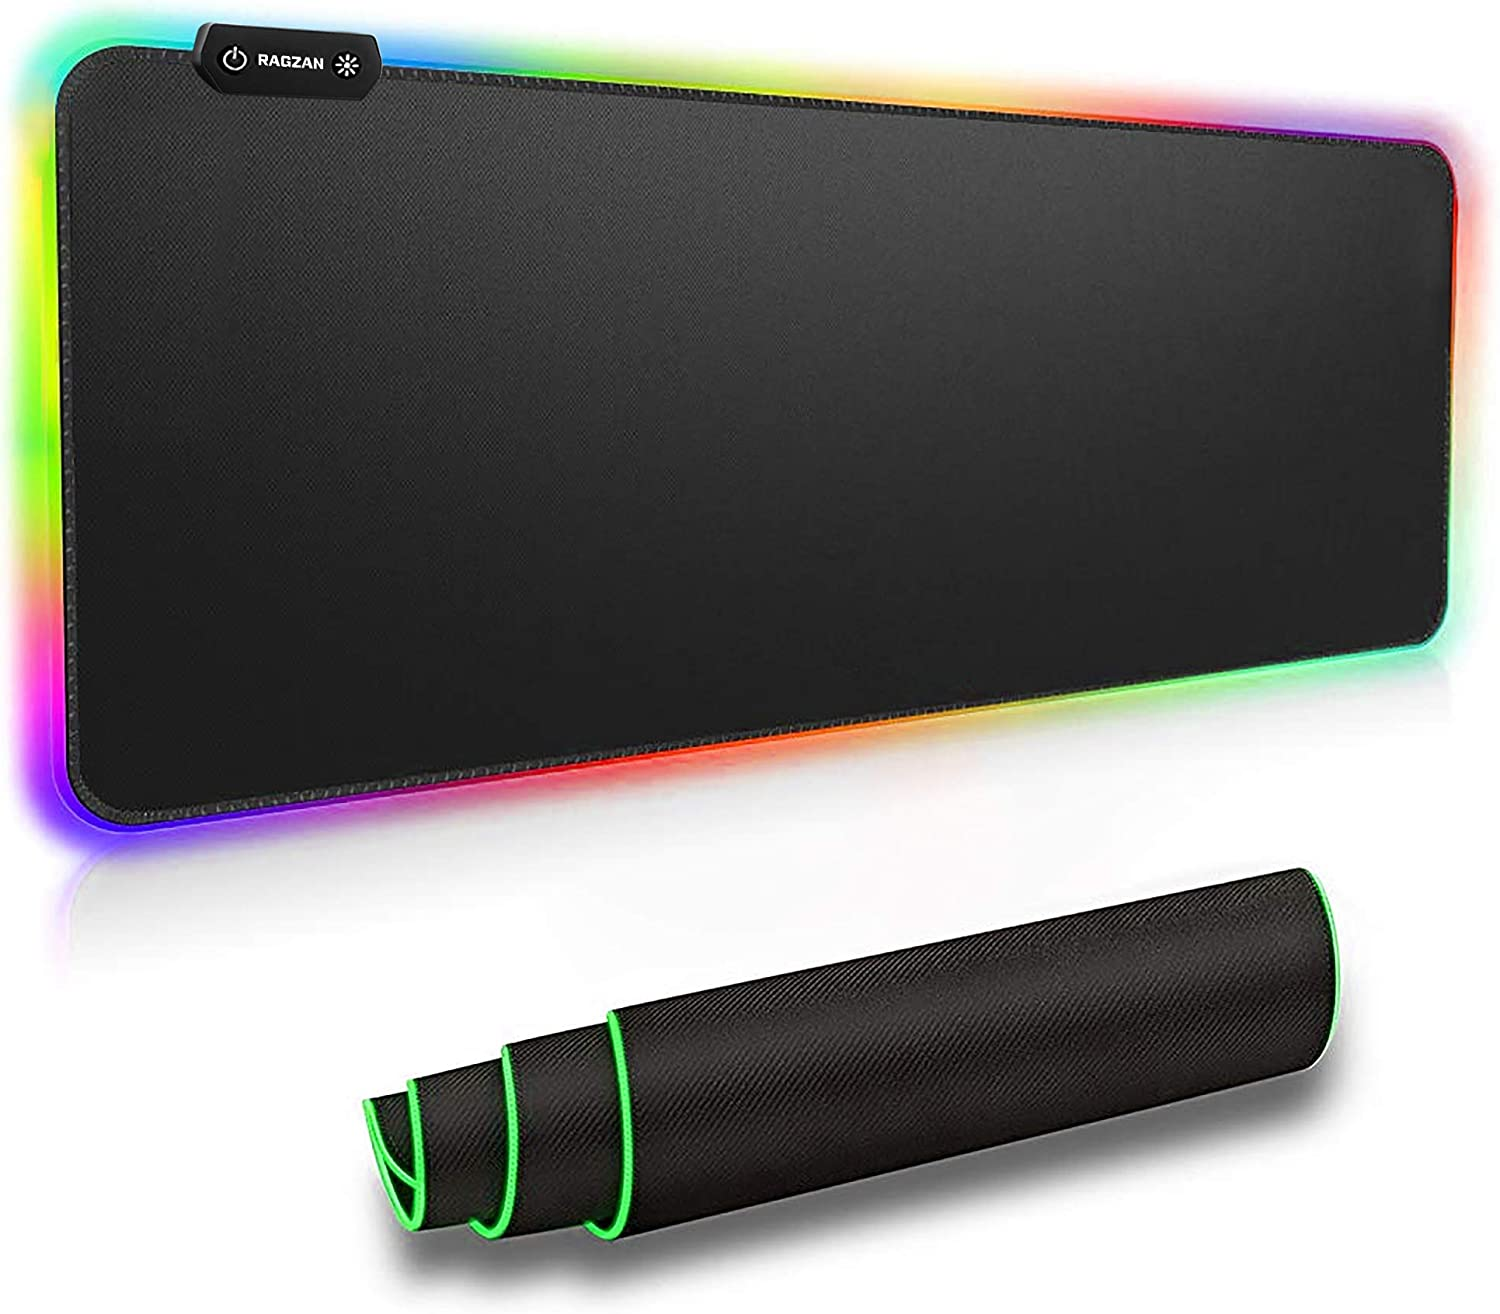 RAGZAN RGB Gaming Mouse Pad Large,LED XXL Extended Mouse Mat Thick and Foldable Mat Anti-Fray Stitched Edges for Keyboard,for Laptop/Keyboard/Mouse/Desktop and More Enjoy Smooth Operating Experience.